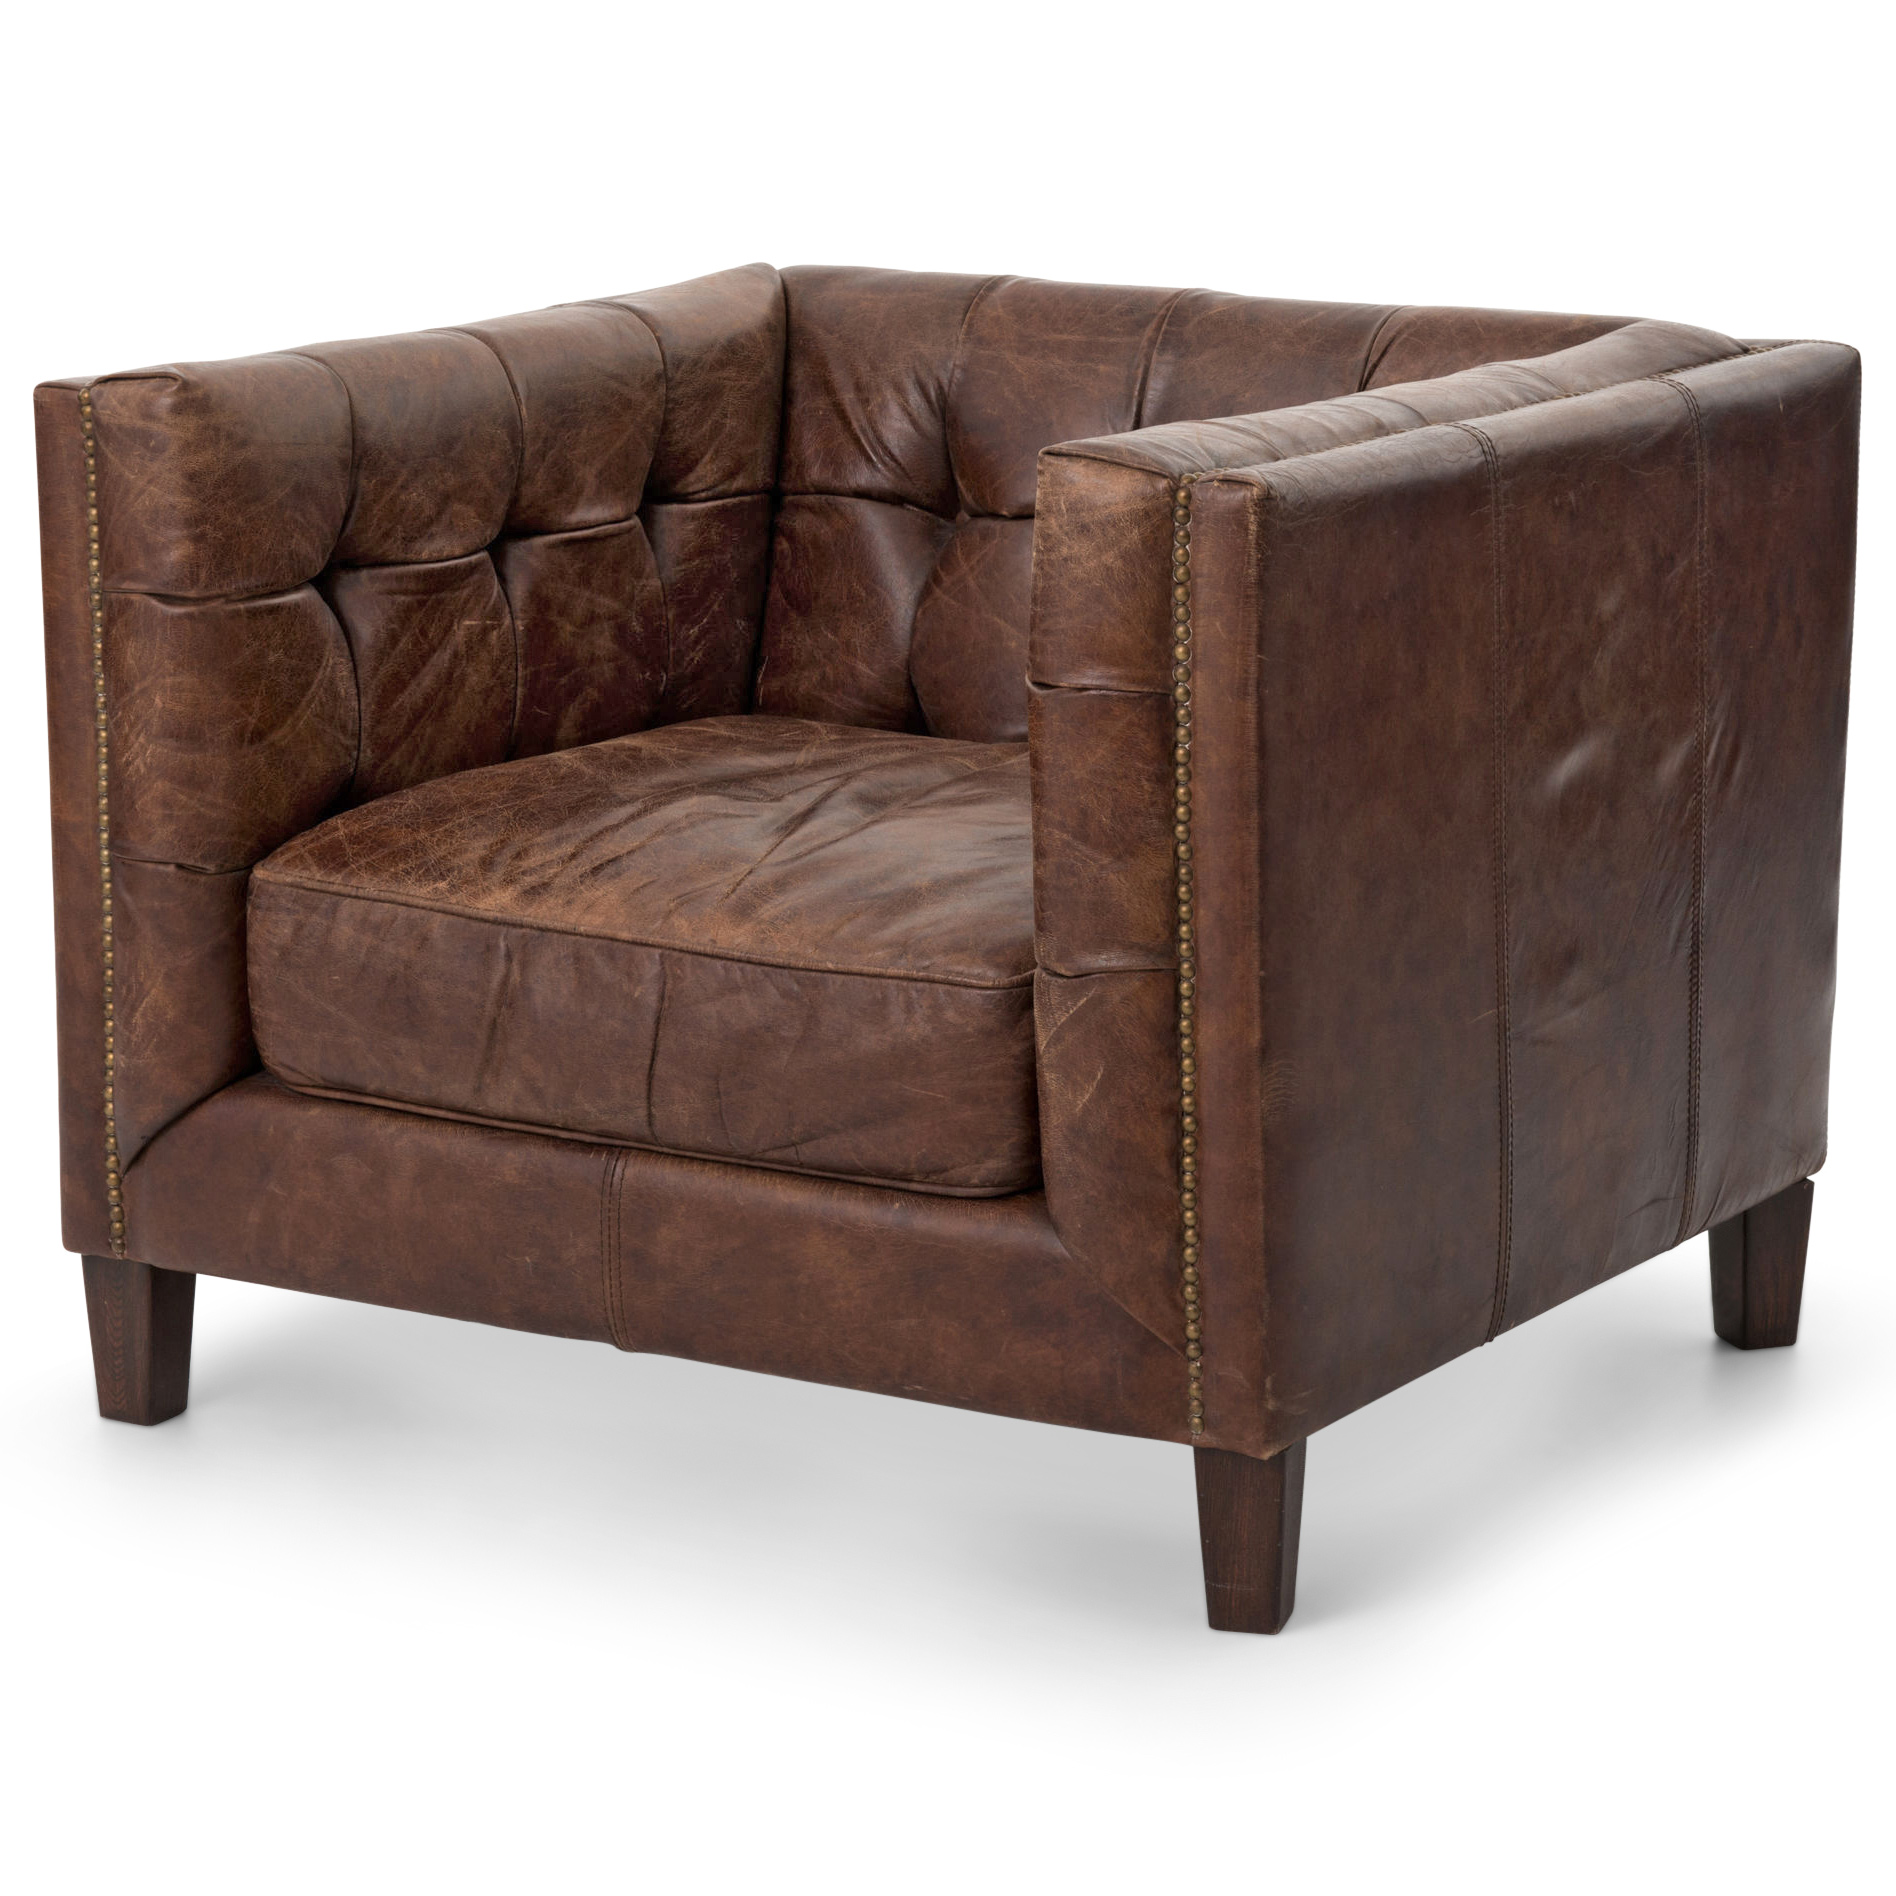 Christopher Rustic Lodge Tufted Straight Back Brown Leather Armchair